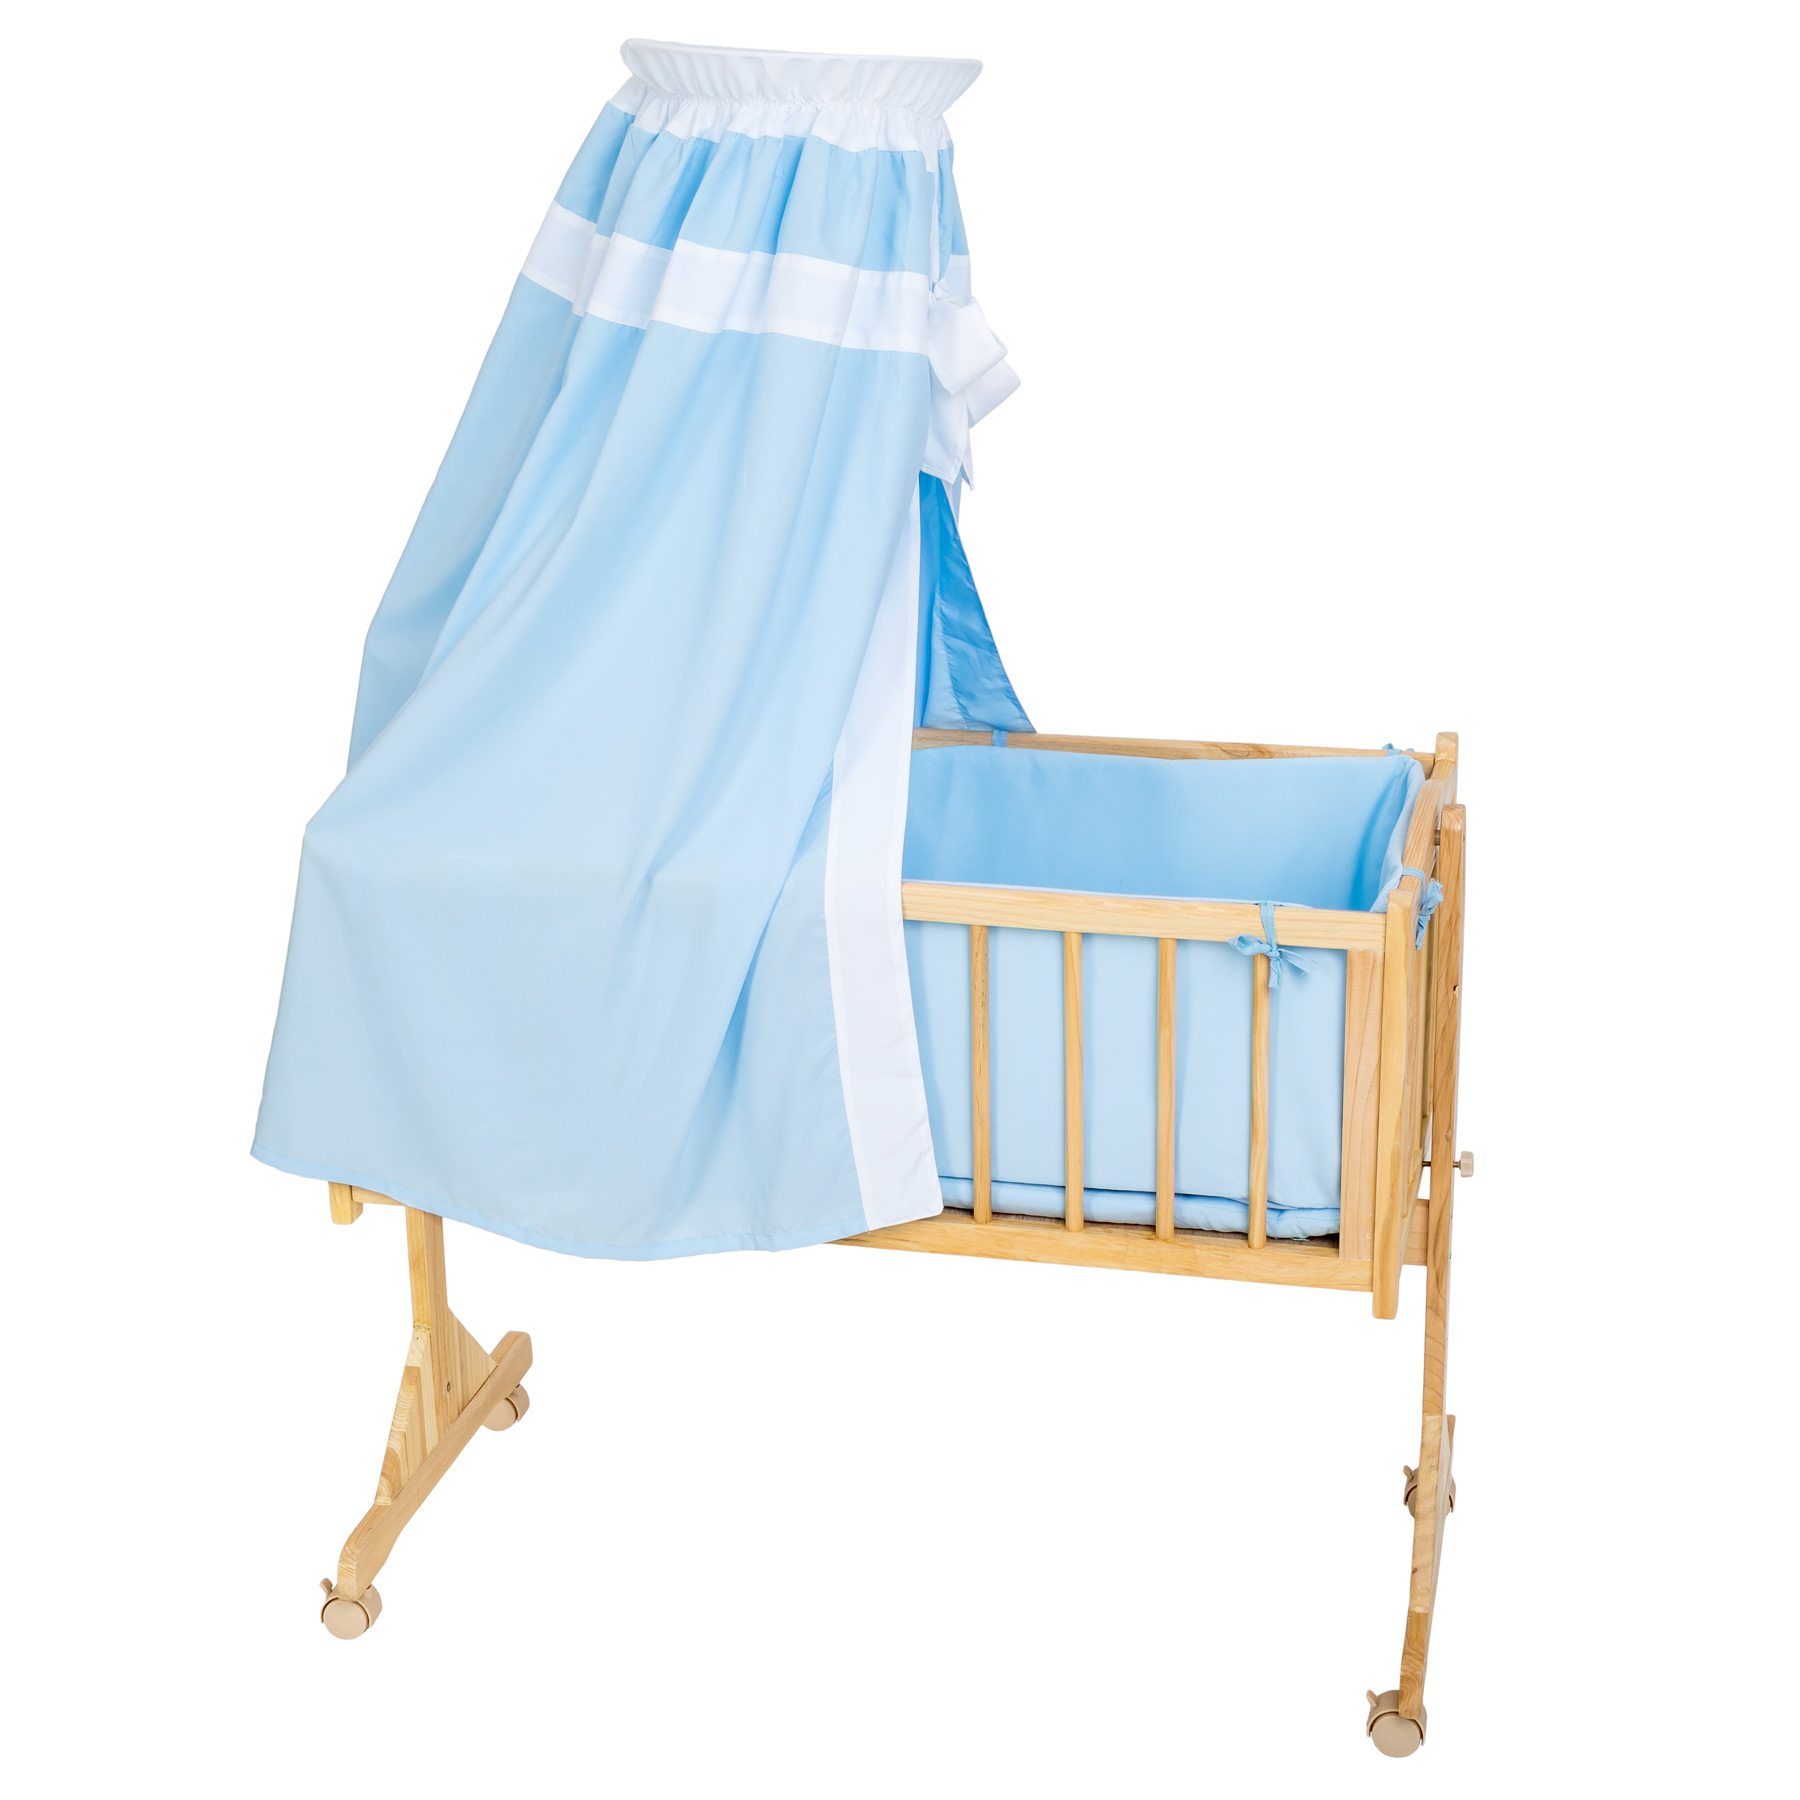 babywiege babybett stubenwagen schaukelwiege wiege holz himmel blau ebay. Black Bedroom Furniture Sets. Home Design Ideas